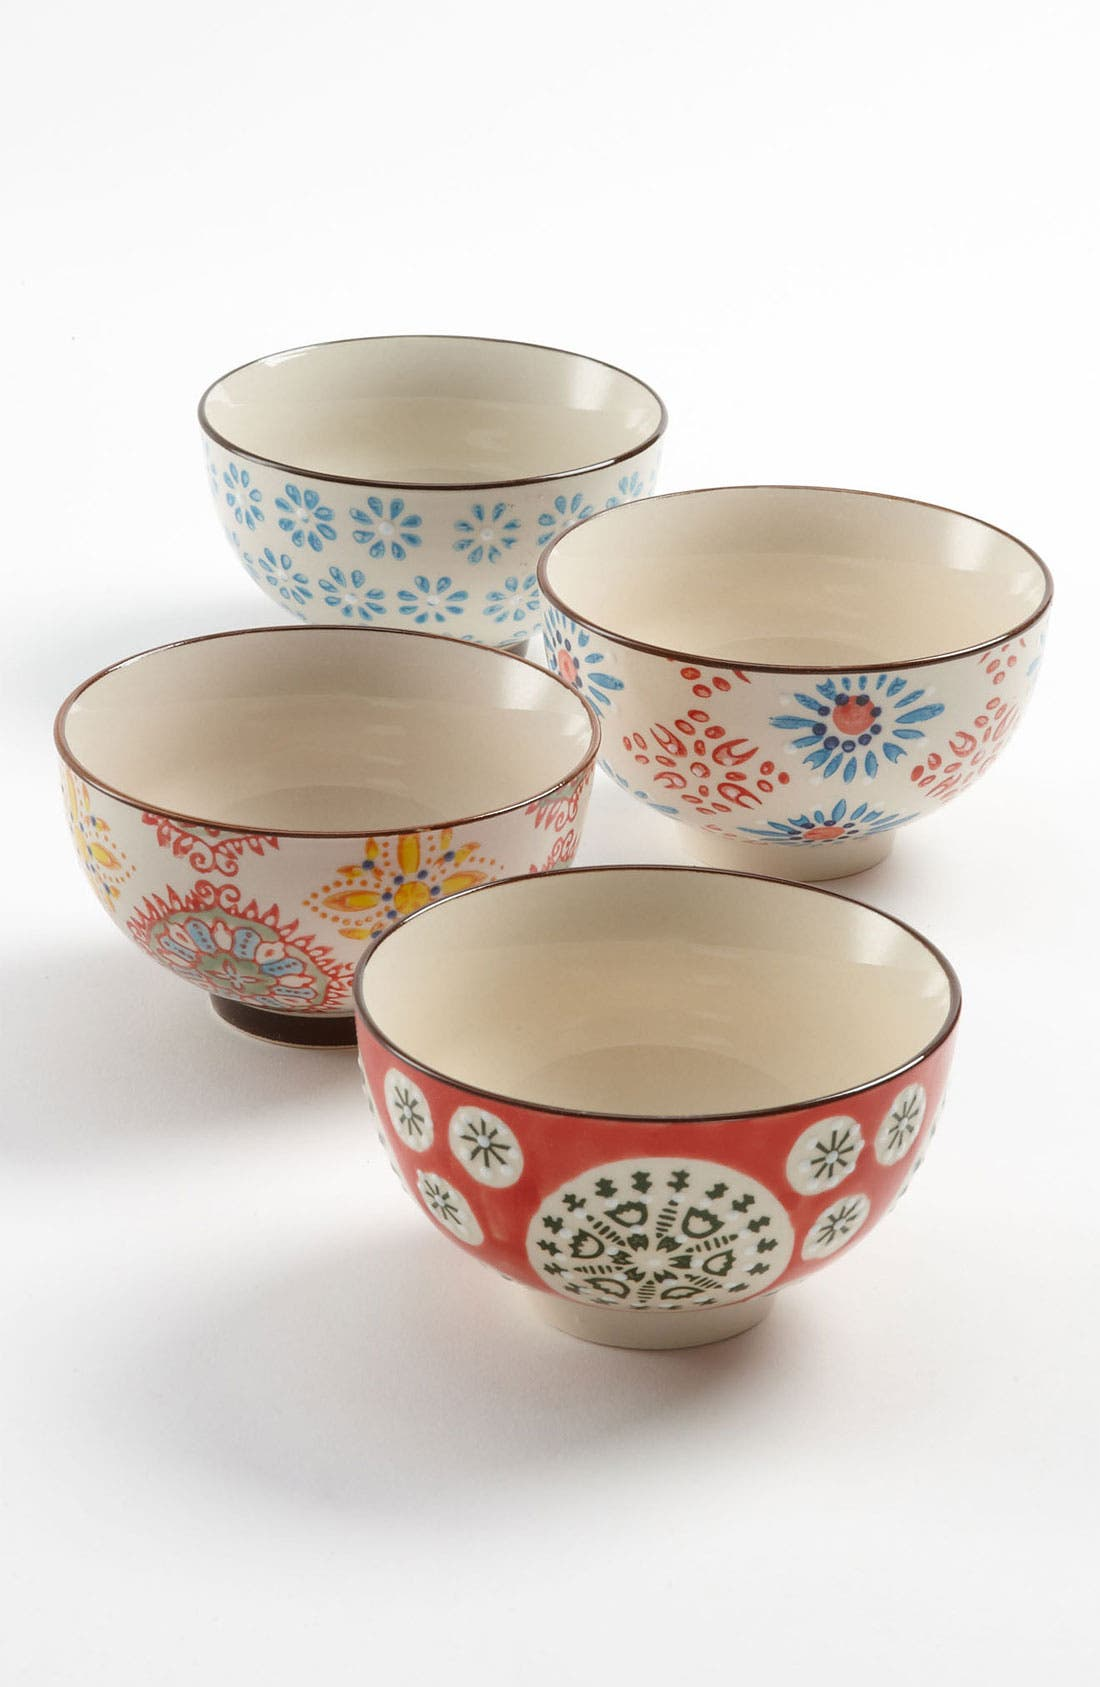 Alternate Image 1 Selected - Chehoma Atelier d'Ambiances 'Bohemian' Bowls (Set of 4)